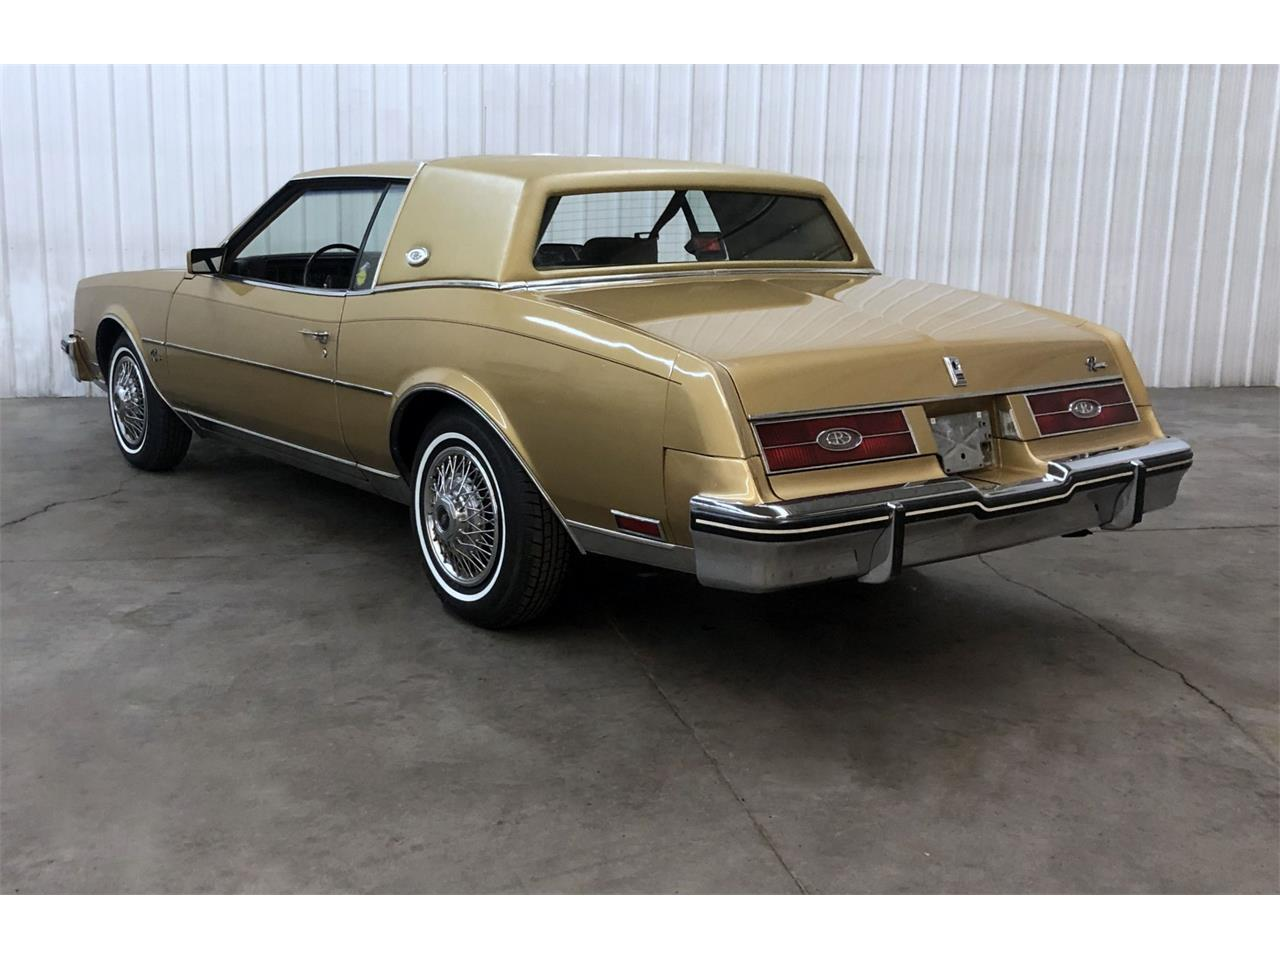 1984 Buick Riviera (CC-1304059) for sale in Maple Lake, Minnesota